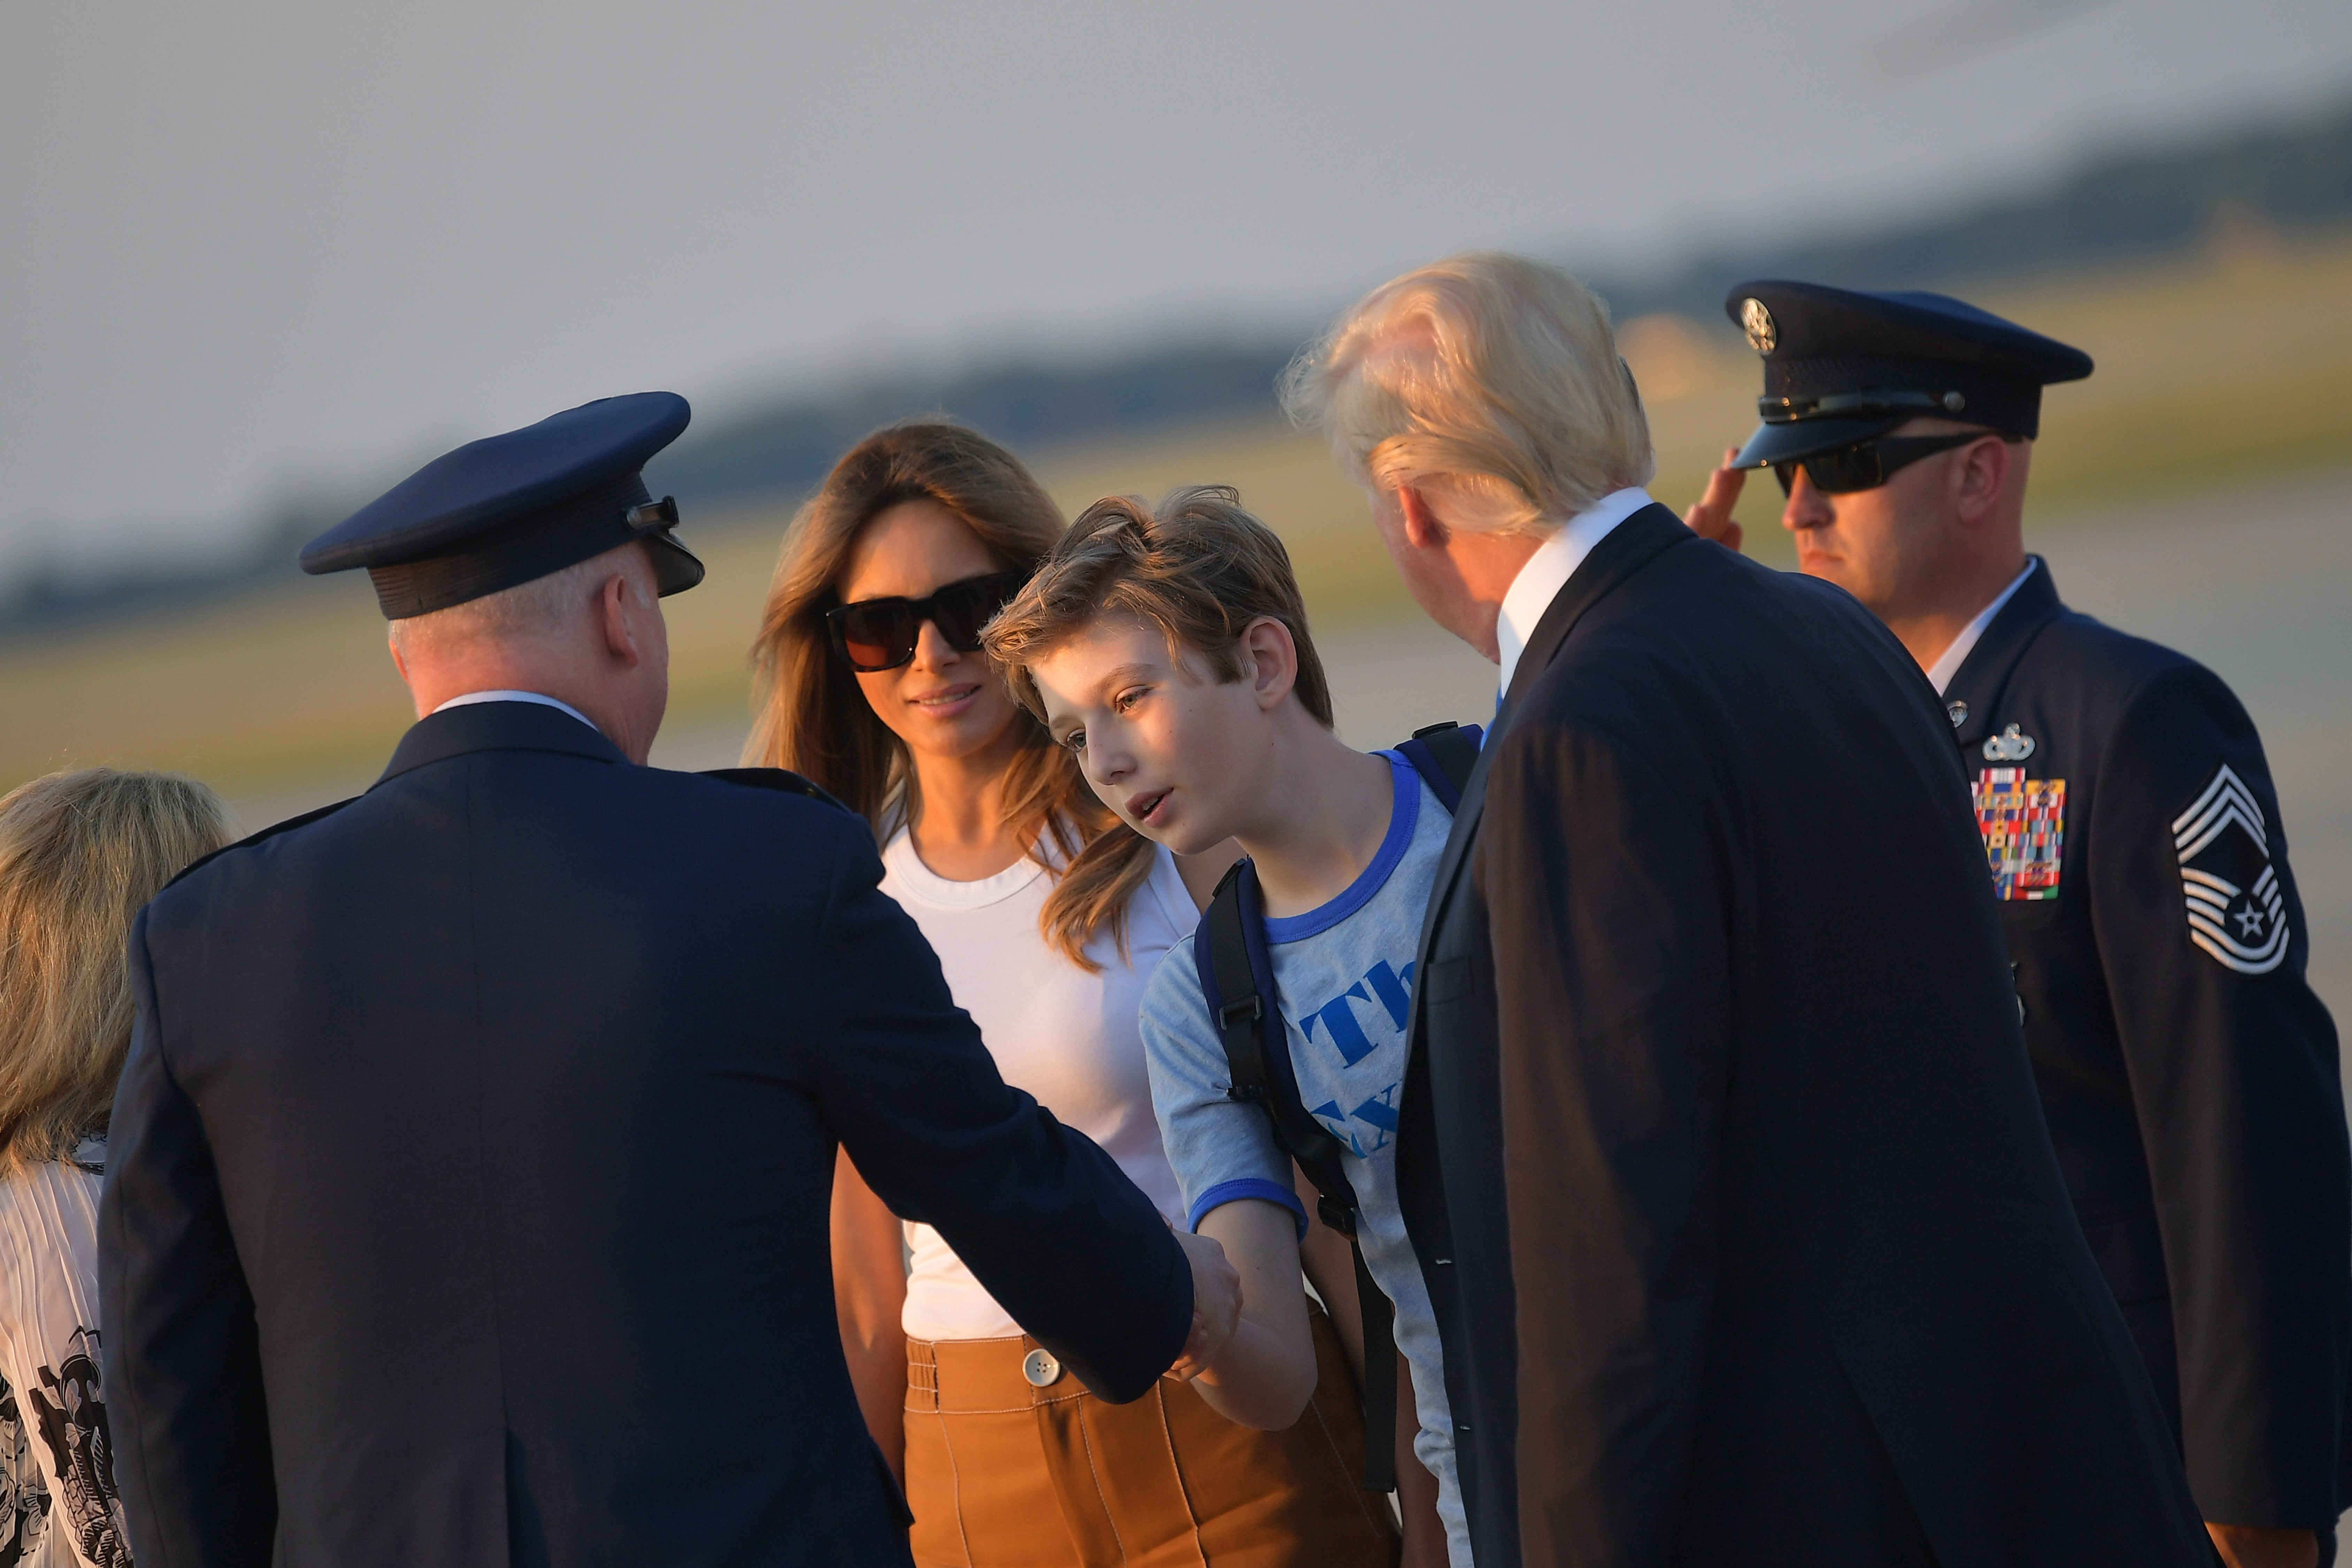 First Lady Melania Trump (2L) and US President Donald Trump (2R) watch as their son Barron Trump shakes hands with Col Al Smith who greeted them upon arrival at Andrews Air Force Base in Maryland on June 11, 2017. Trump is returning to Washington, DC after spending the weekend at this Bedminster, New Jersey golf club. MANDEL NGAN/AFP/Getty Images